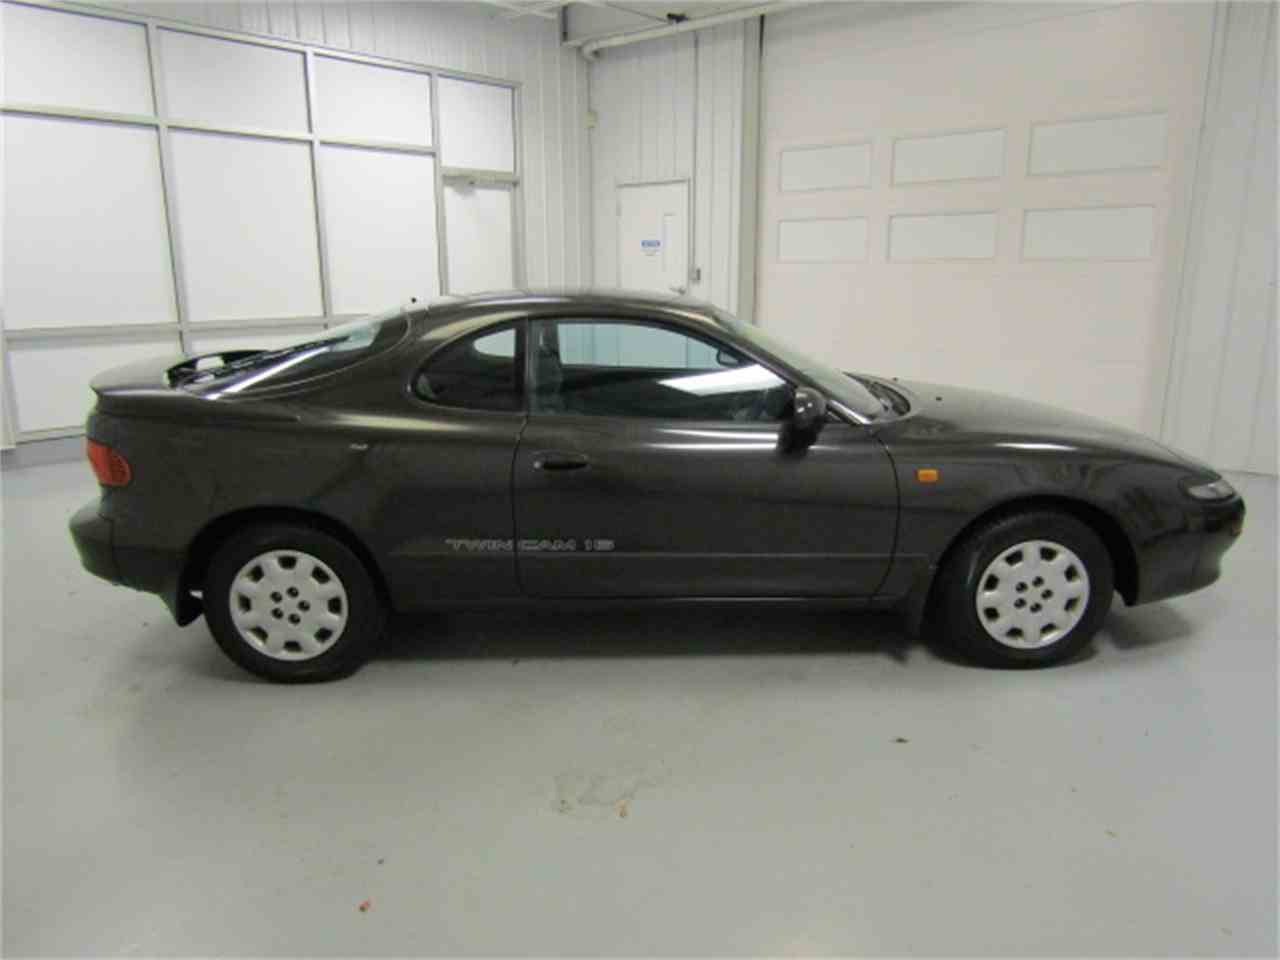 Large Picture of 1989 Toyota Celica - $10,831.00 - JM31